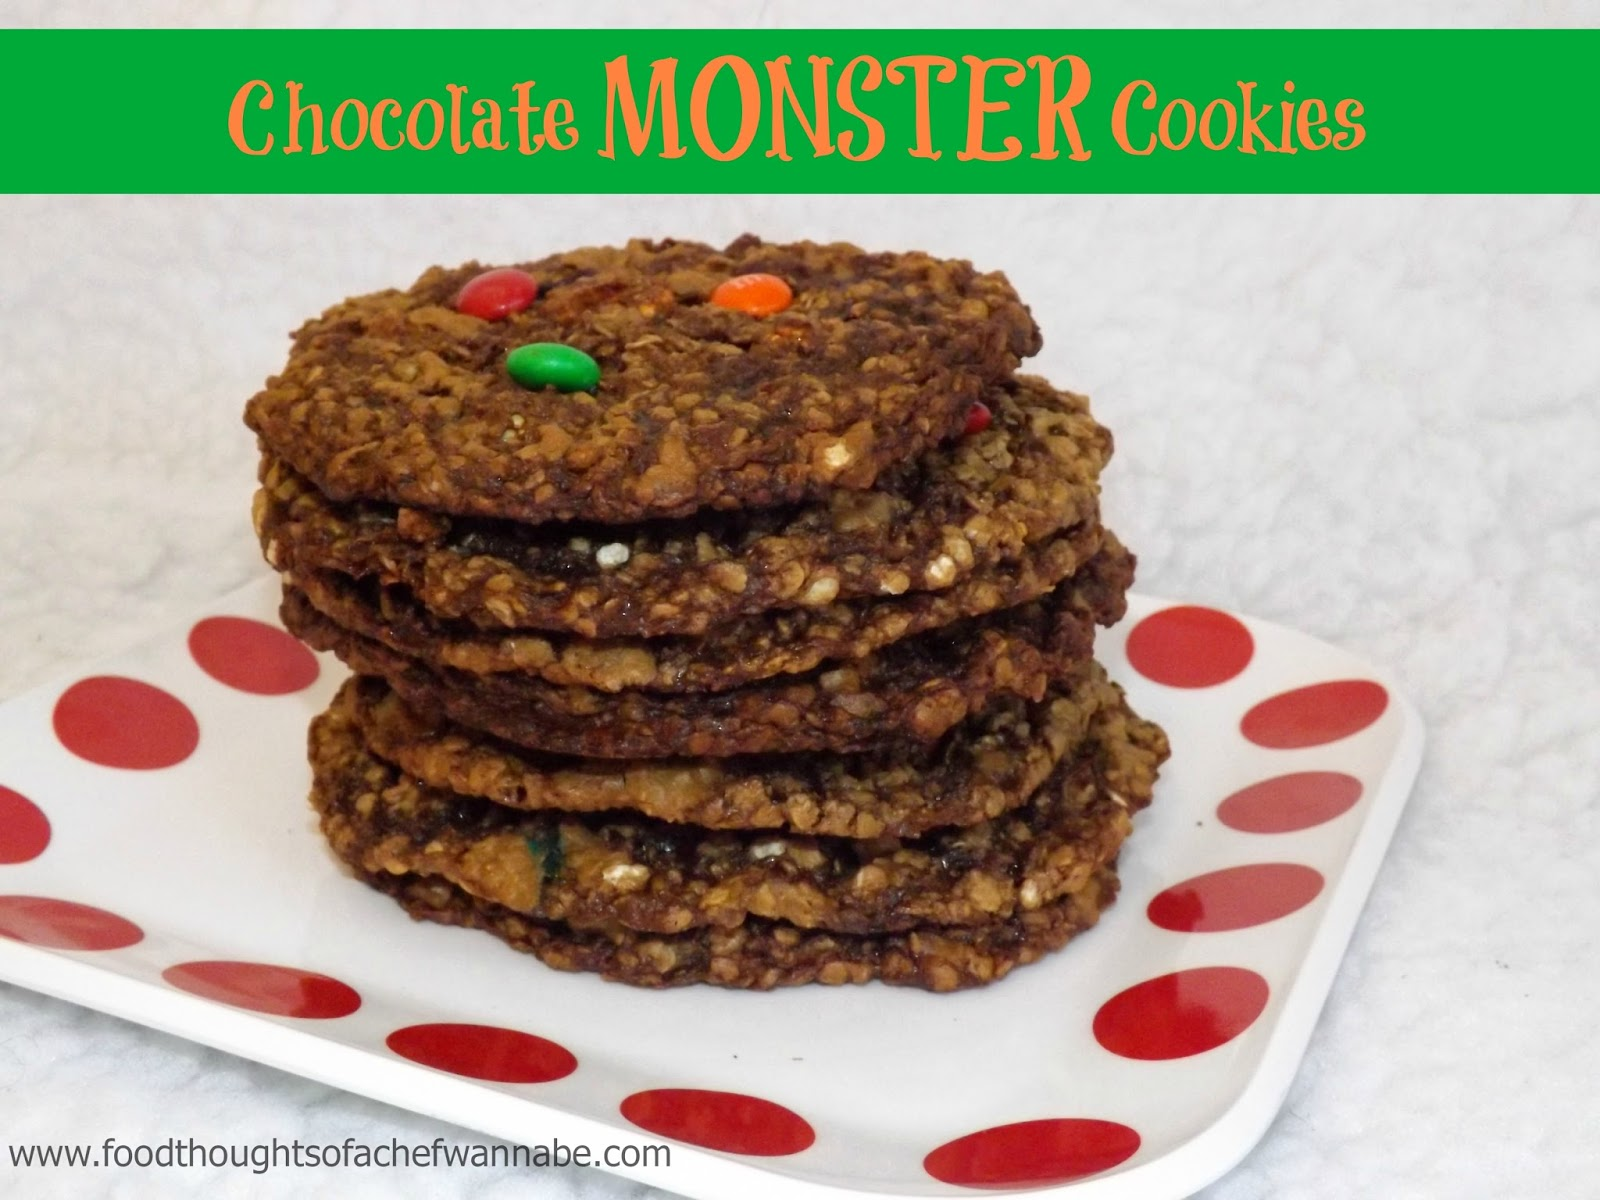 Foodthoughtsofachefwannabe Chocolate Monster Cookies. Breastfeeding Signs. Bernard Signs. Irritated Signs. 18 Star Signs Of Stroke. Navigation Signs Of Stroke. Tumblr Word Signs. Raptor Signs. Dysthymic Disorder Signs